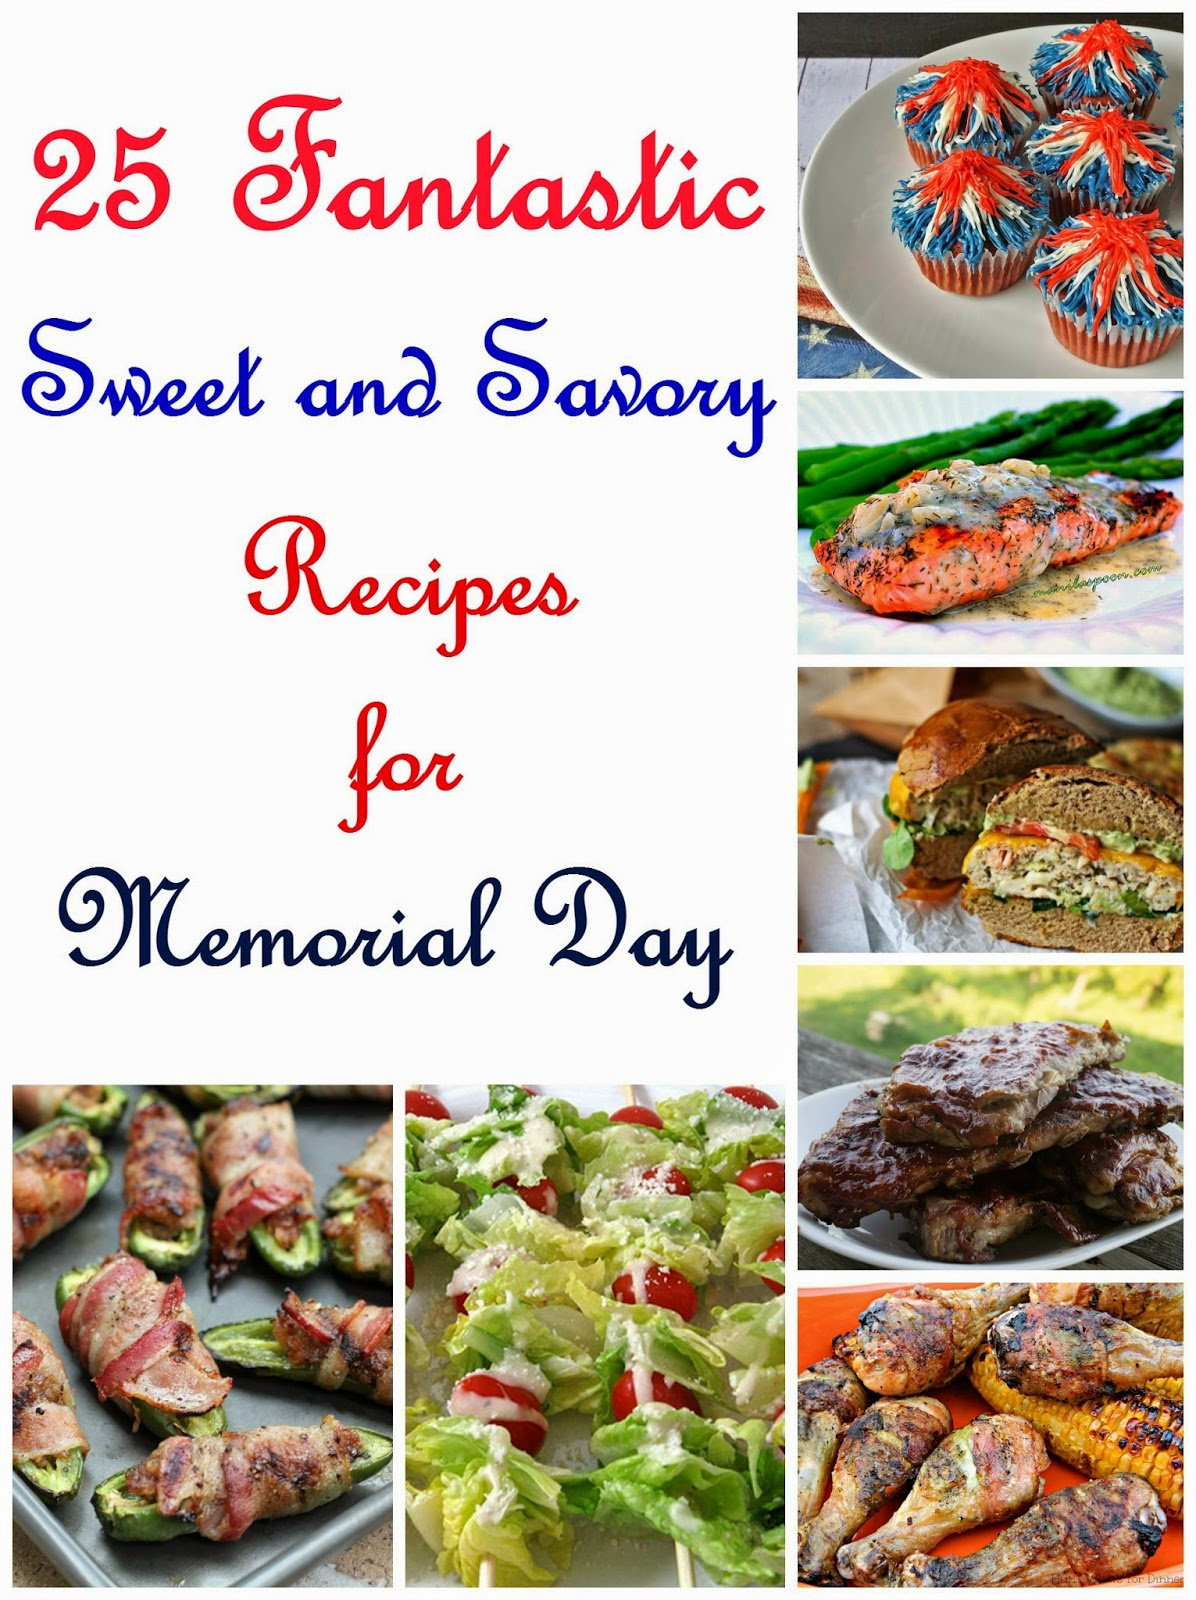 25 Fantastic Recipes to Celebrate Memorial Day